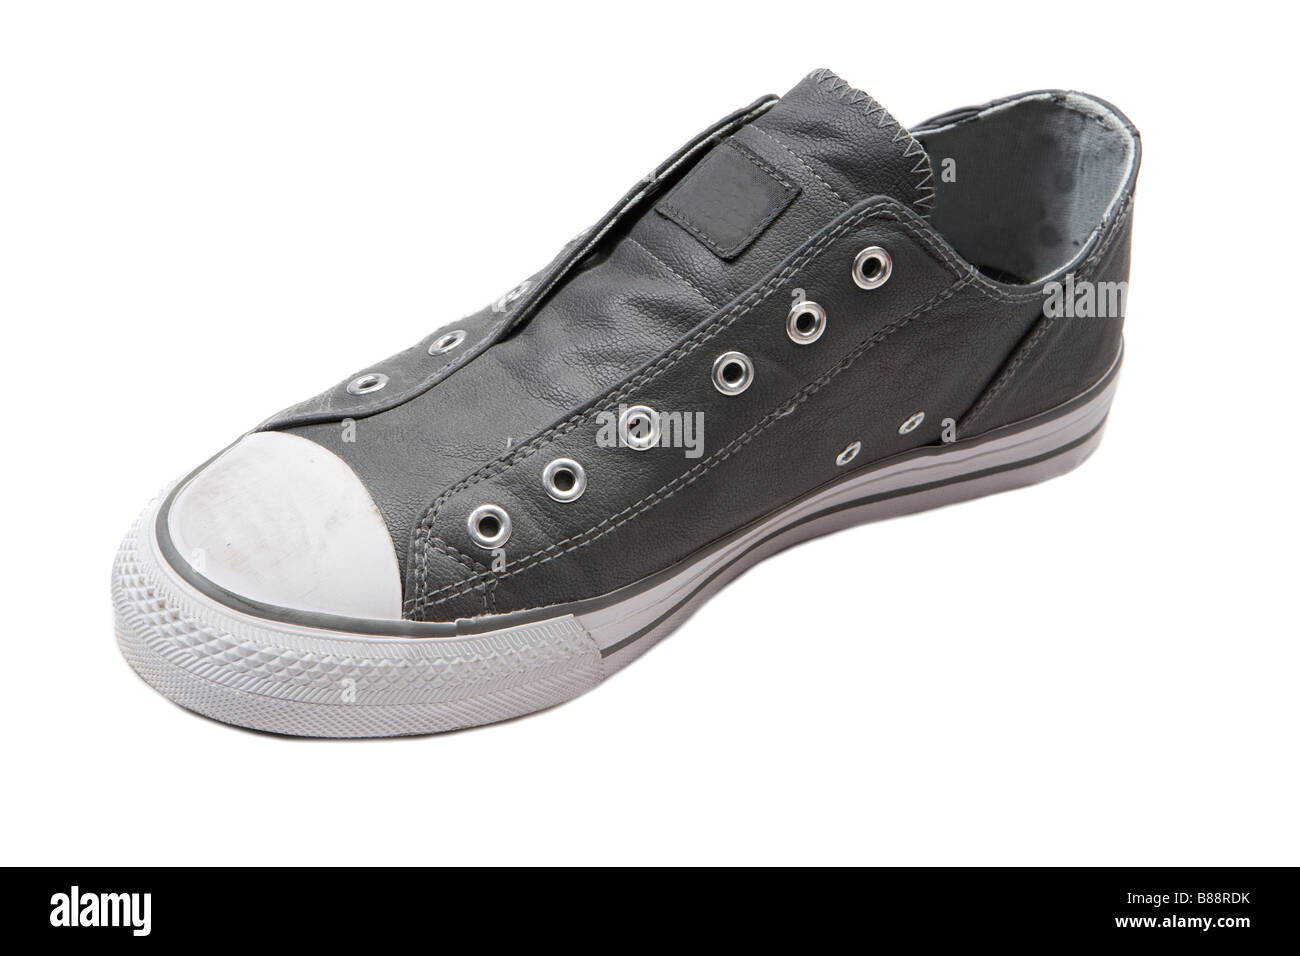 Grey sneaker on a over white background - Stock Image